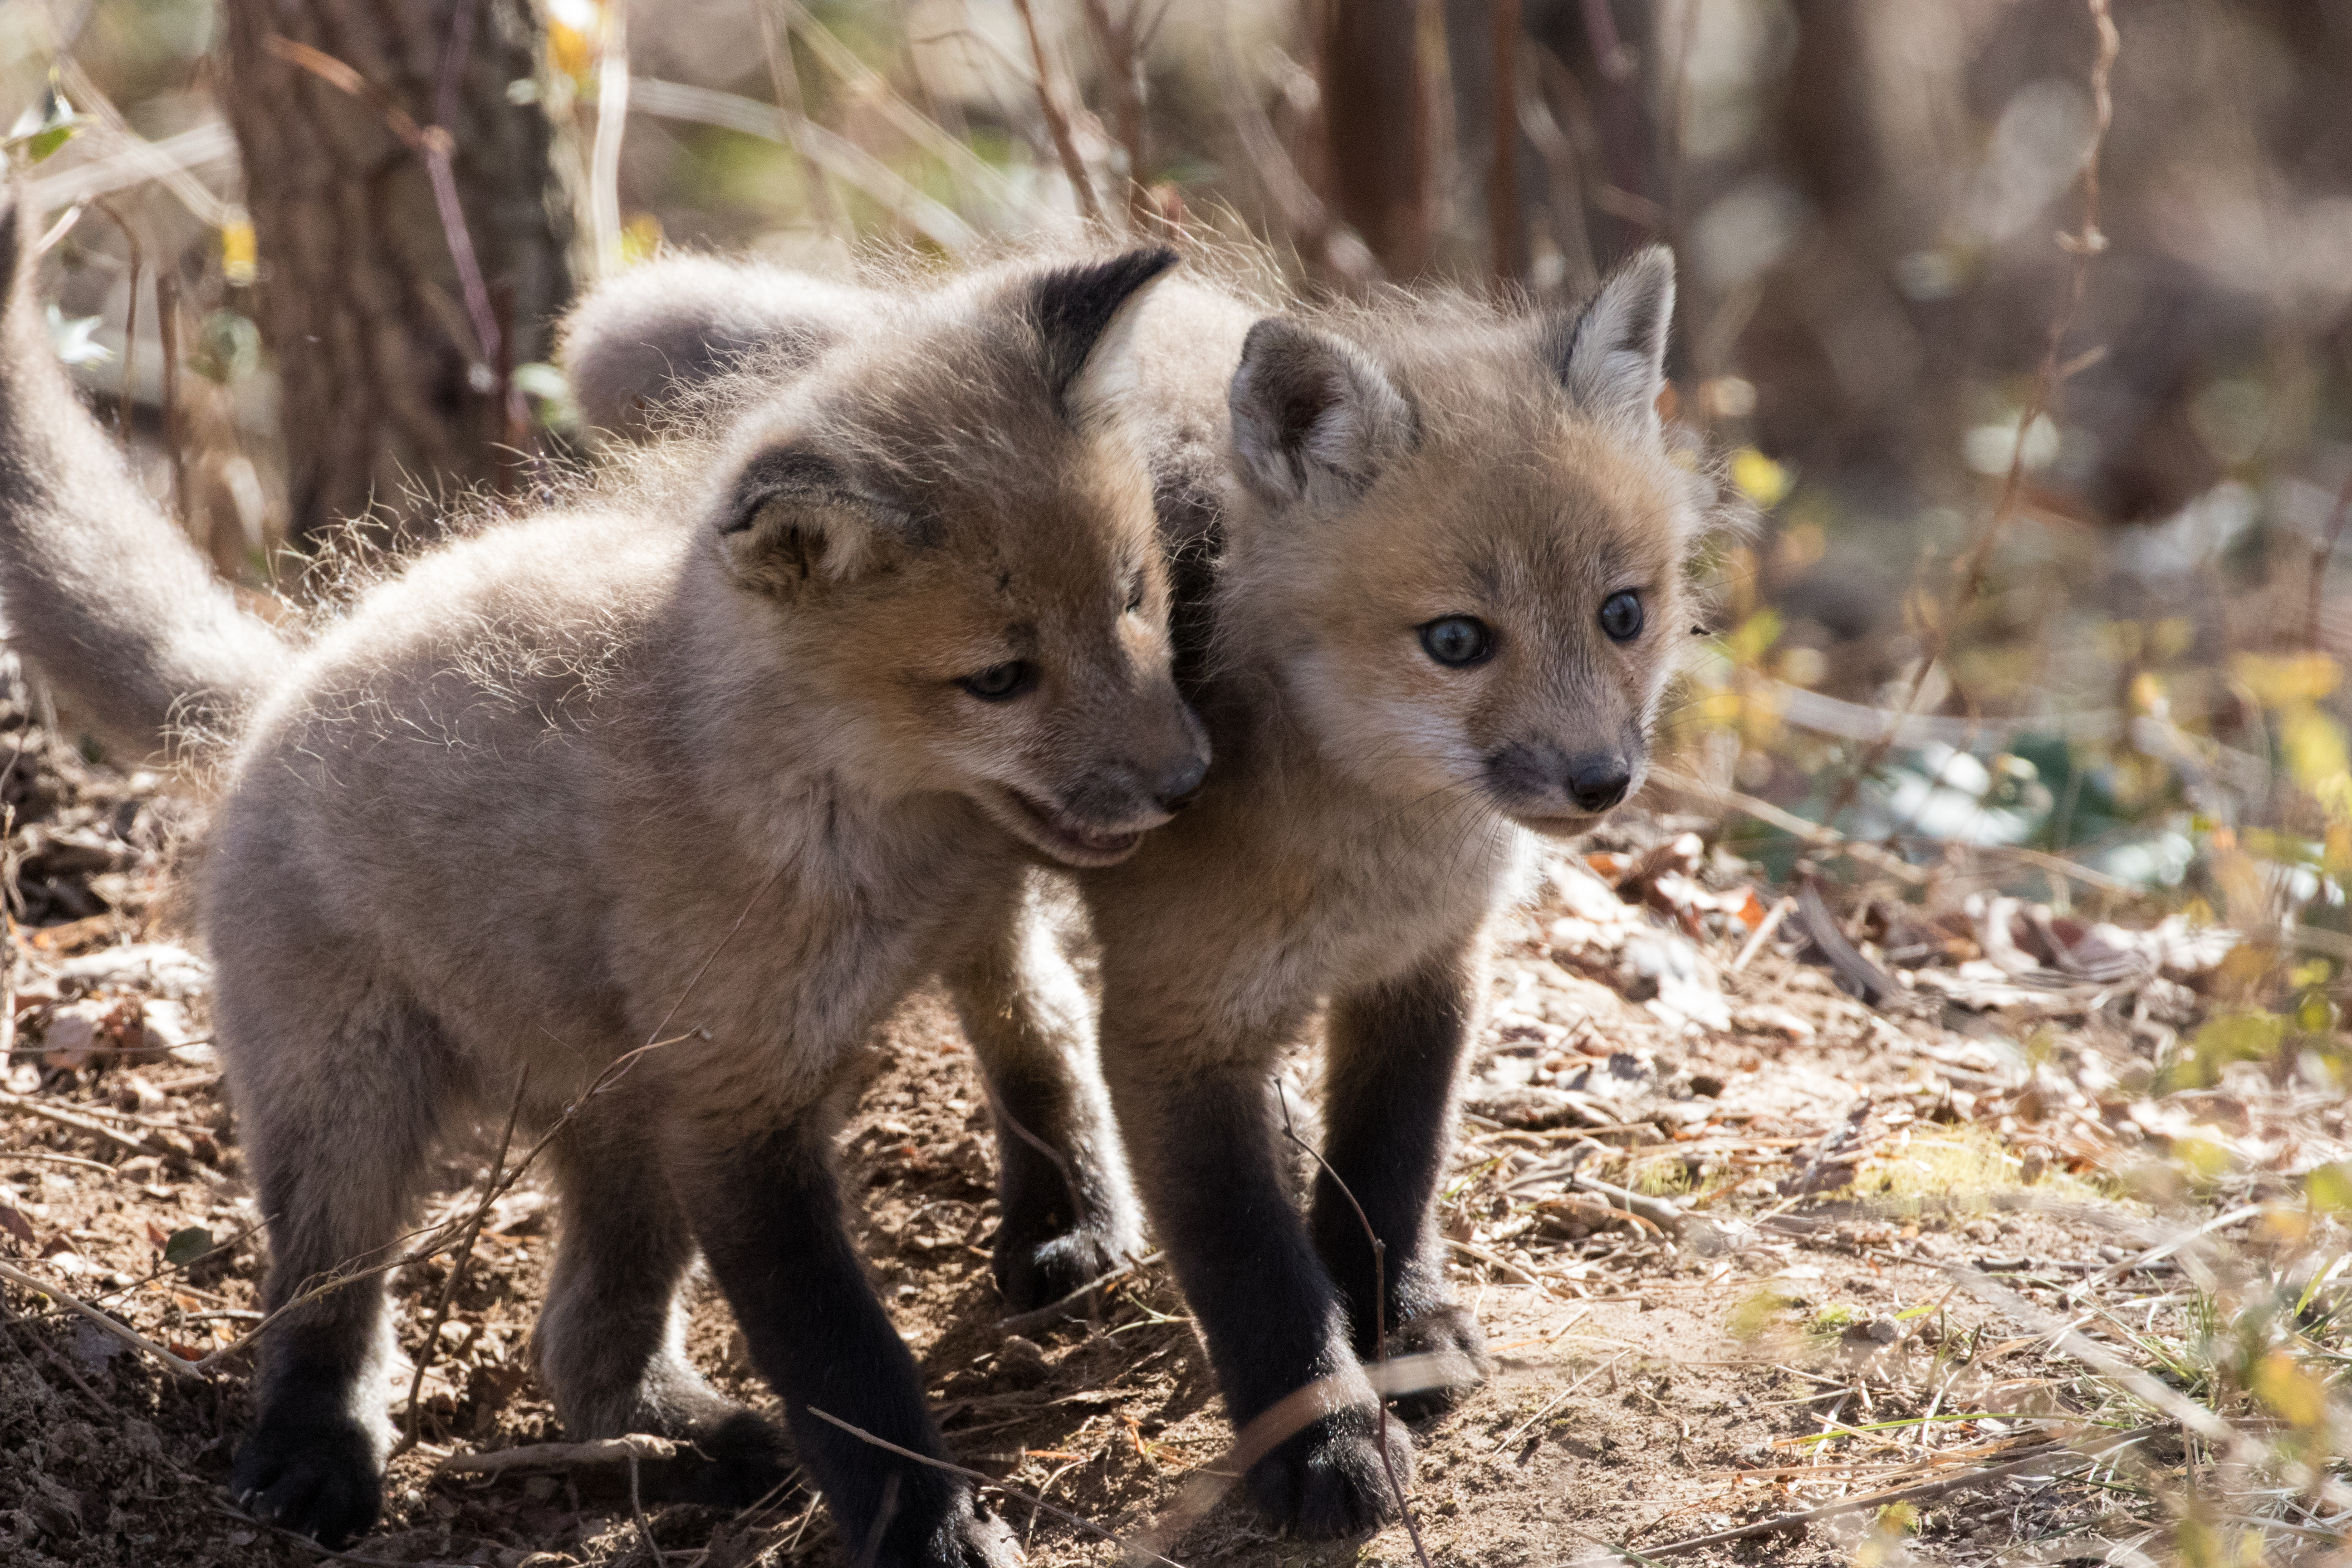 Juvenile red foxes are known as kits. These kits were spotted playing at a national wildlife refuge in Delaware. Photo taken on March 17, 2018.